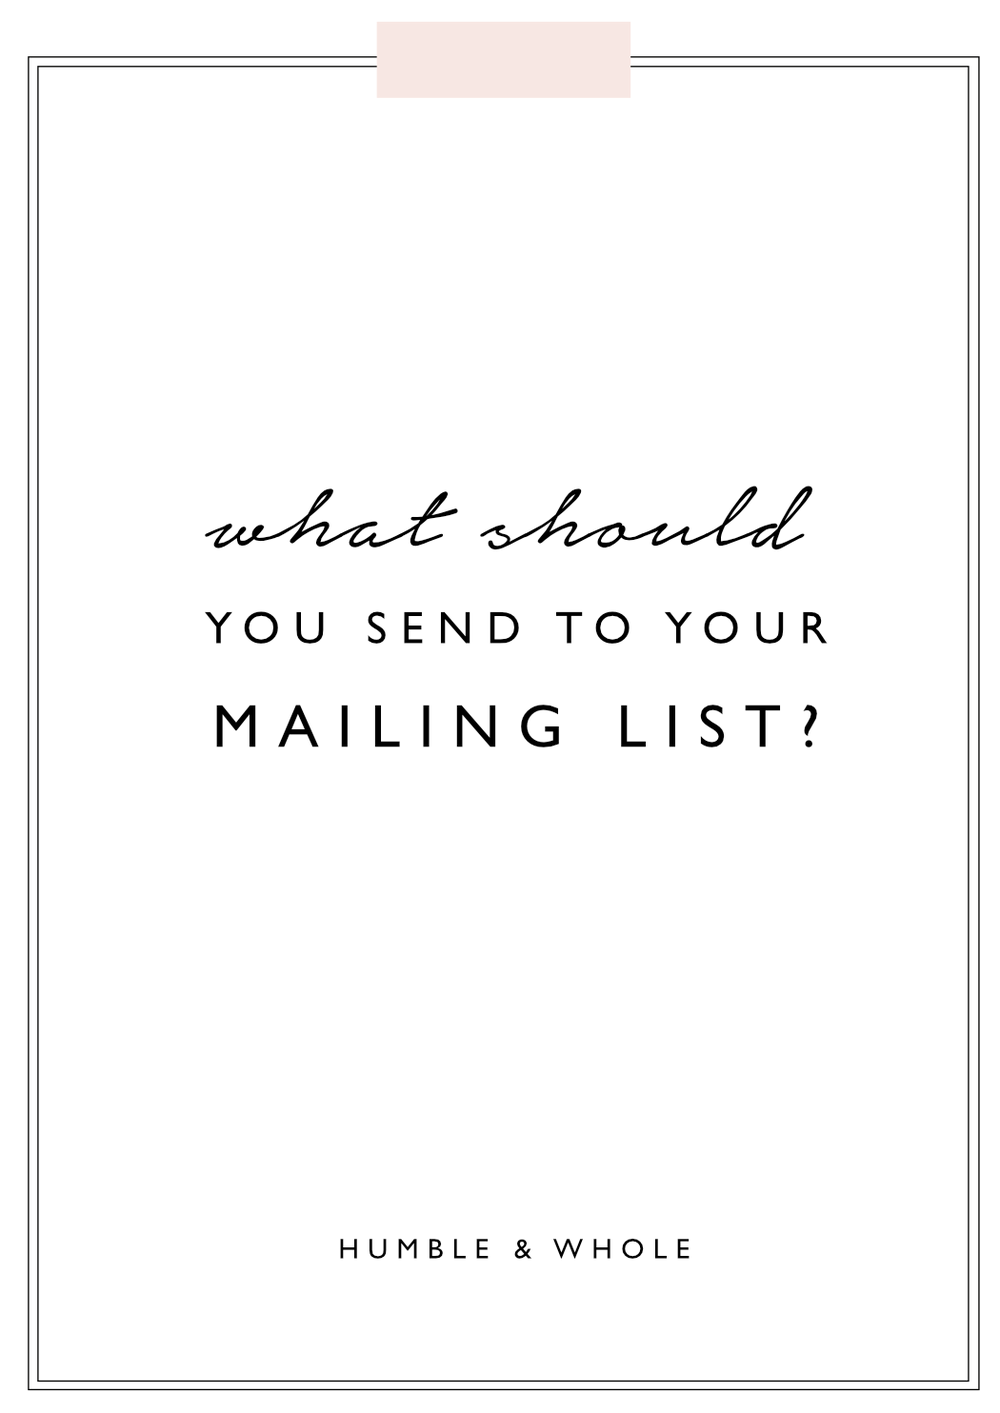 Your mailing list is essentially the most valuable aspect of your business.  You may understand the importance of your list but have no idea to send your subscribers.  Click through to discover 7 types of emails you can send to your mailing list!